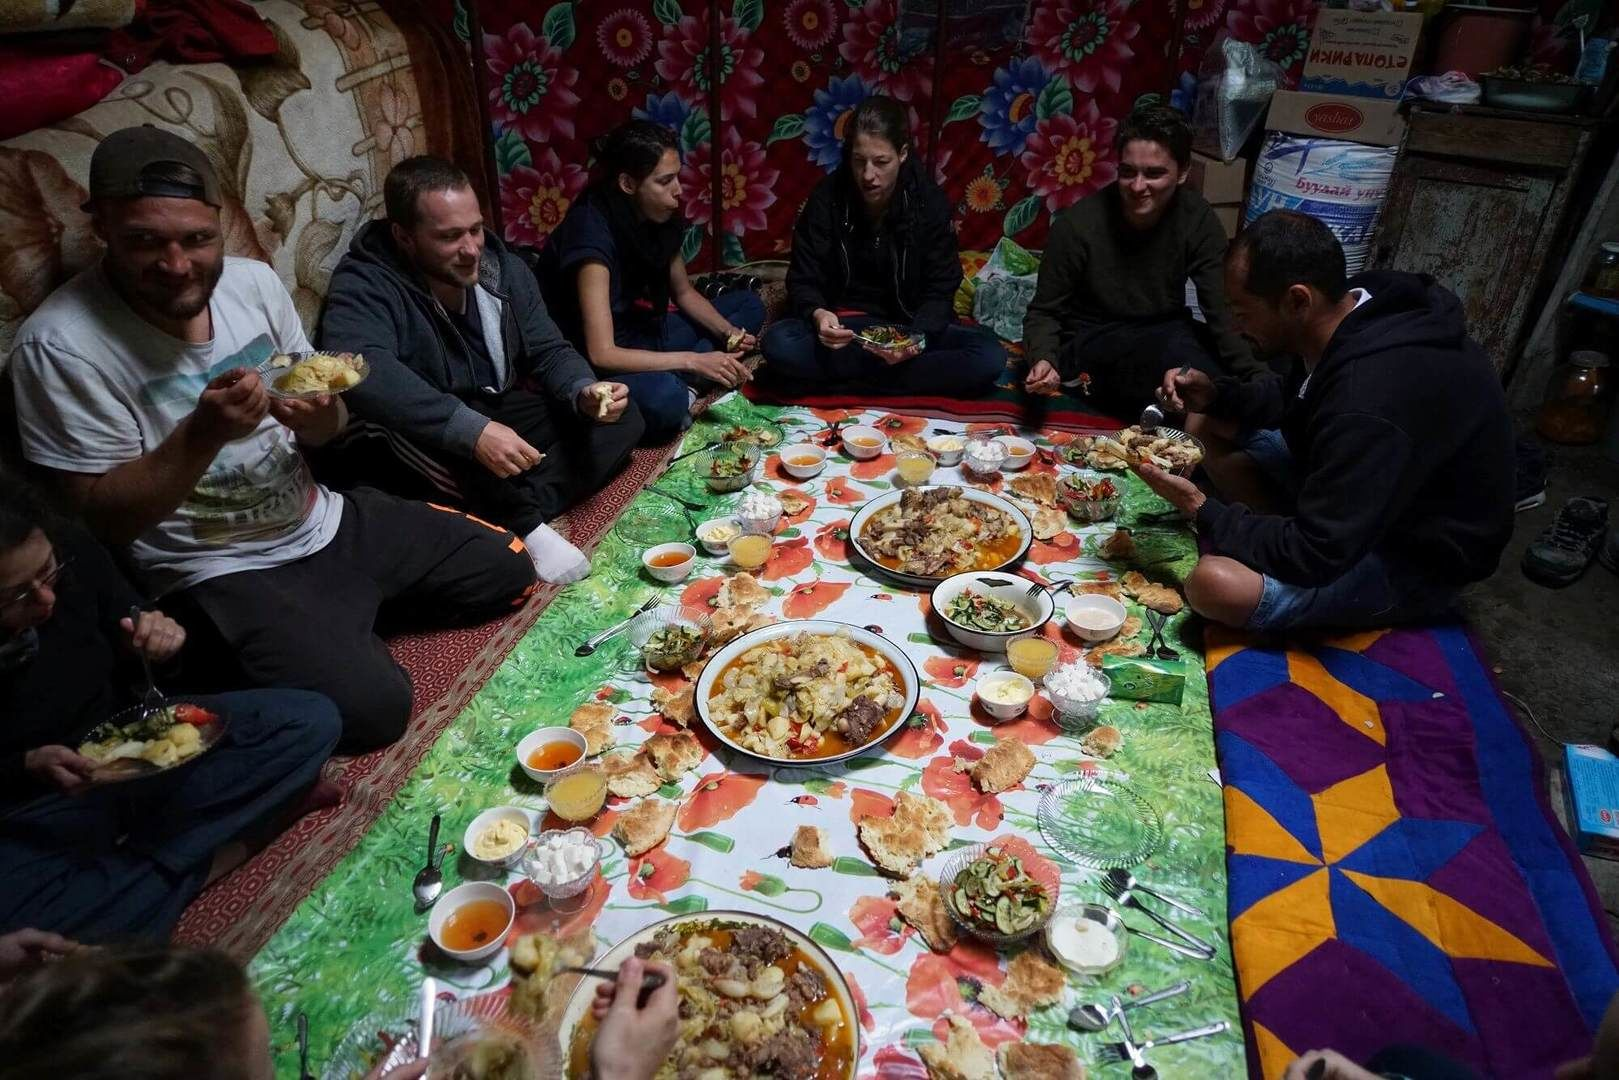 Party like a nomad or eating like a nomad in Kyrgyzstan Tours